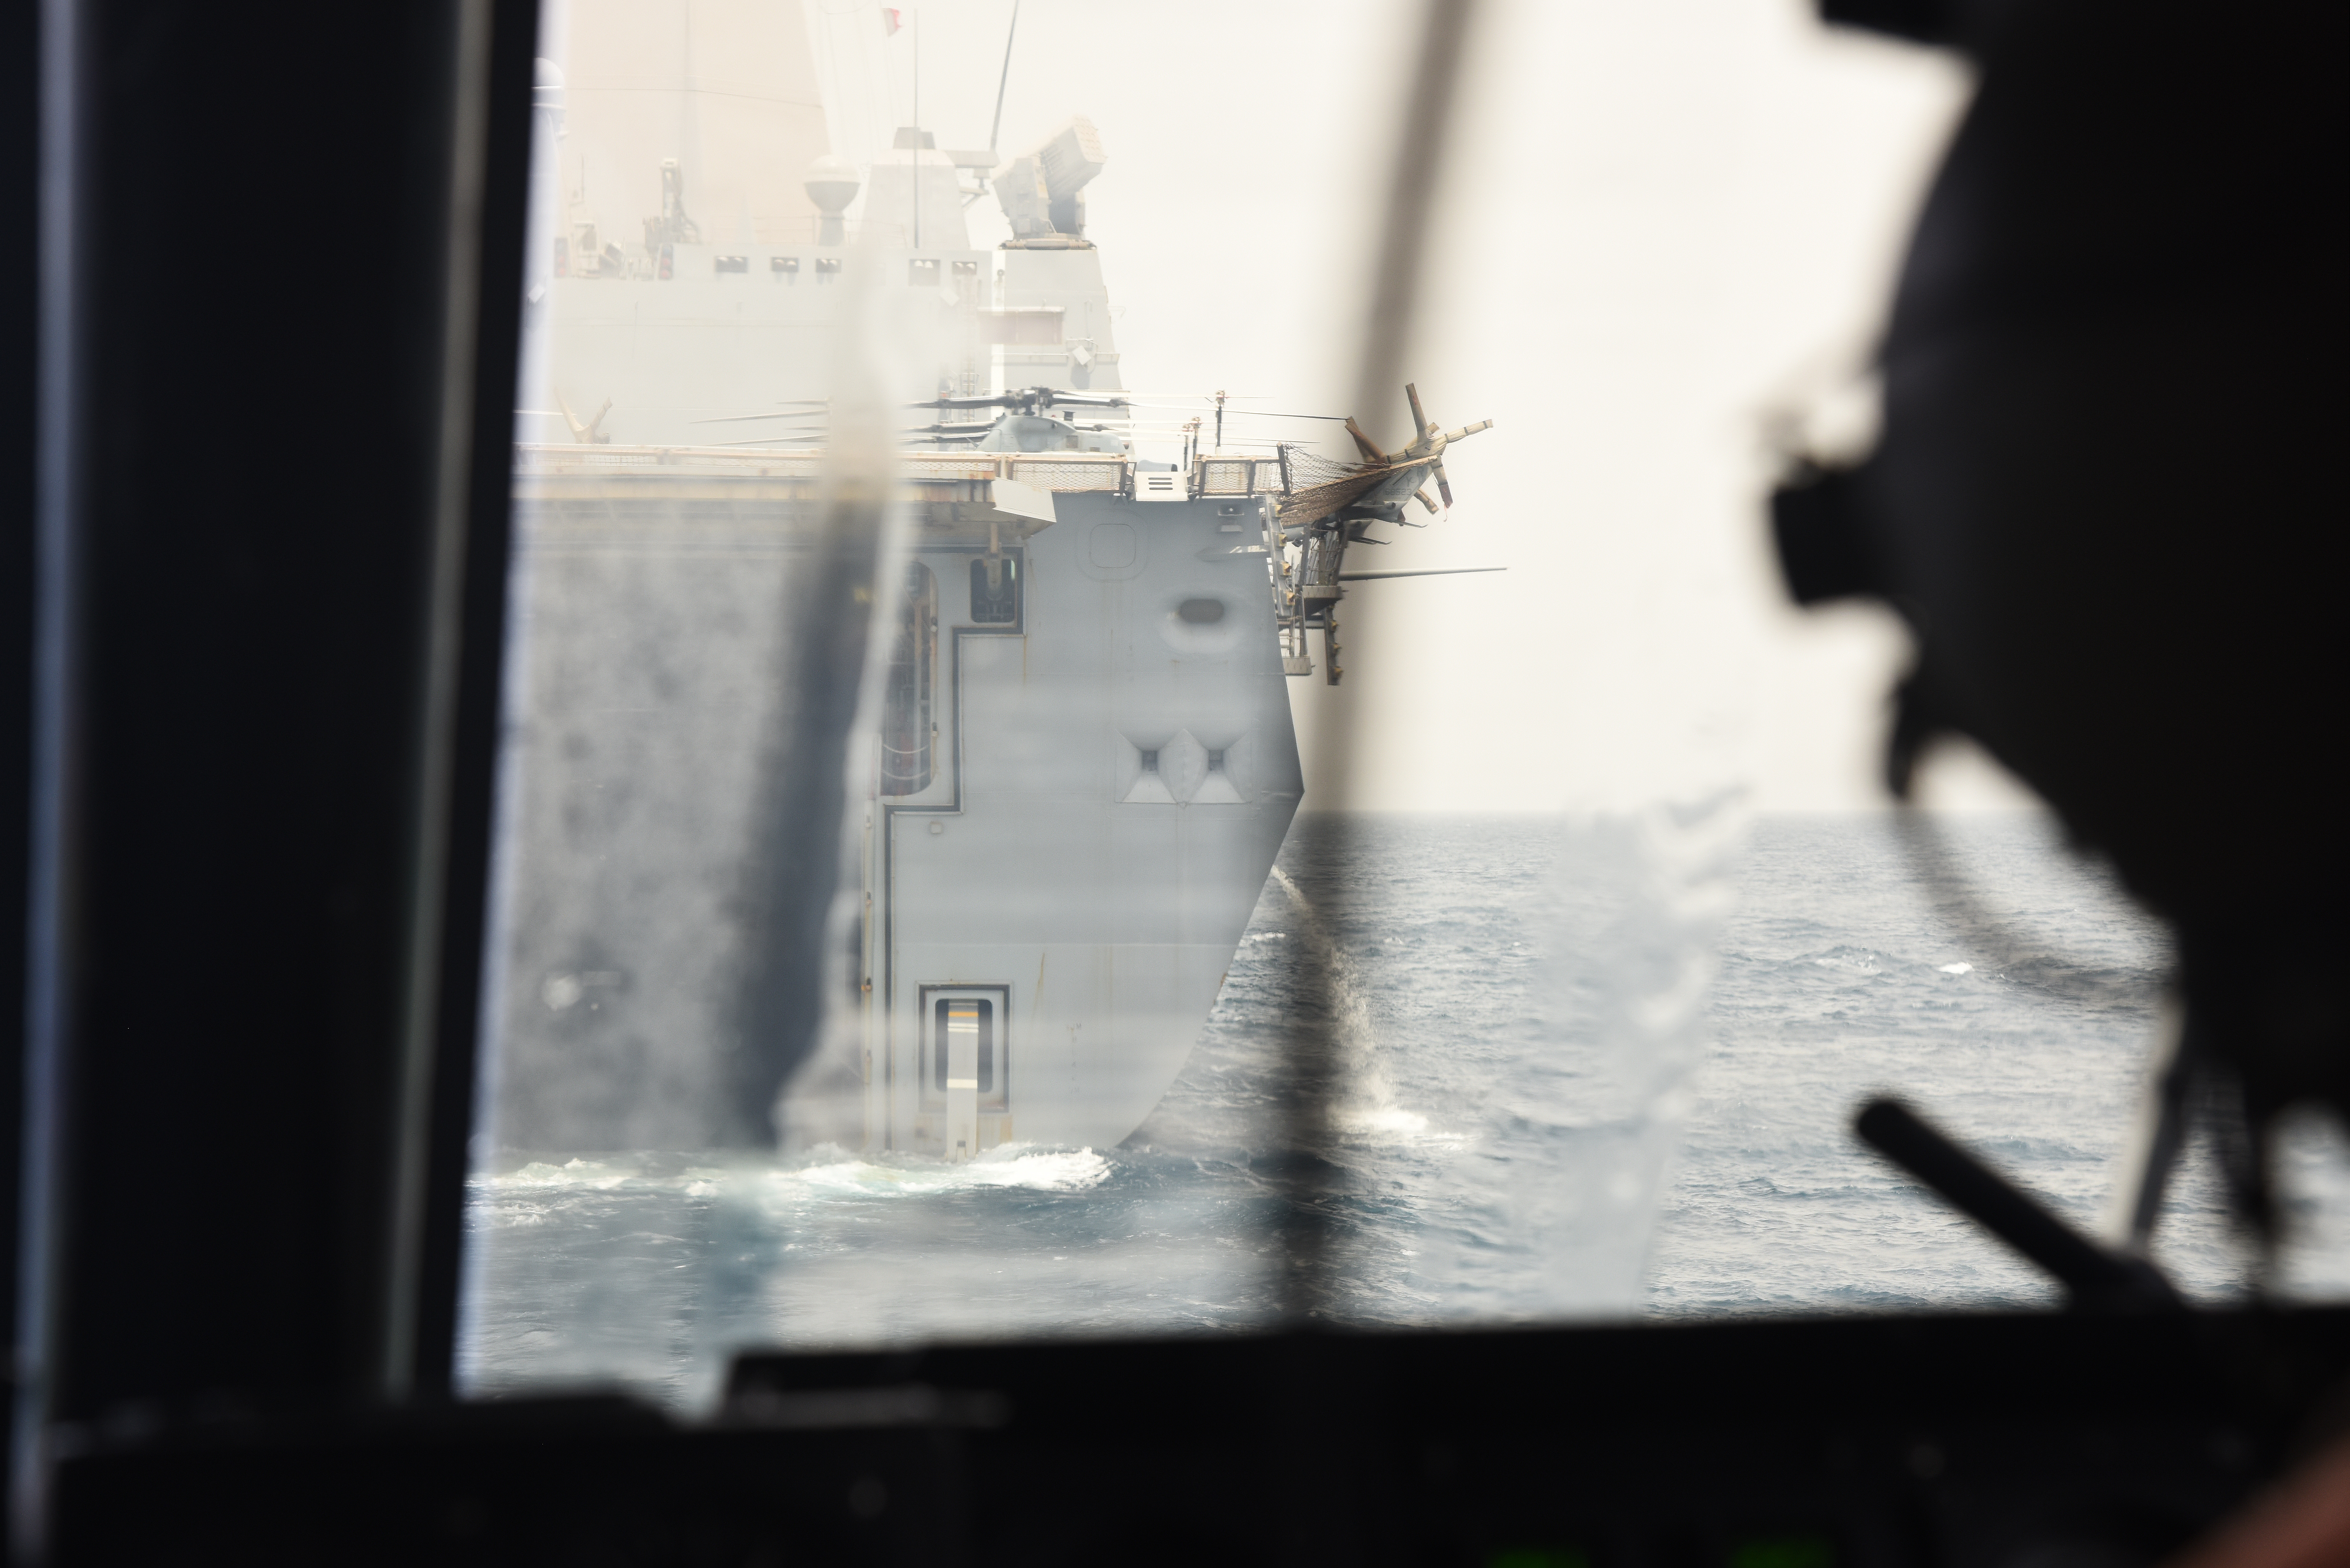 A U.S. Navy Landing Craft Air Cushion (LCAC) approaches USS Anchorage in Arta, Djibouti, July 20, 2015. USS Anchorage is a transport dock ship, and is designed to transport and land elements of a landing force for expeditionary warfare missions.  (U.S. Air Force photo by Staff Sgt. Maria Bowman)